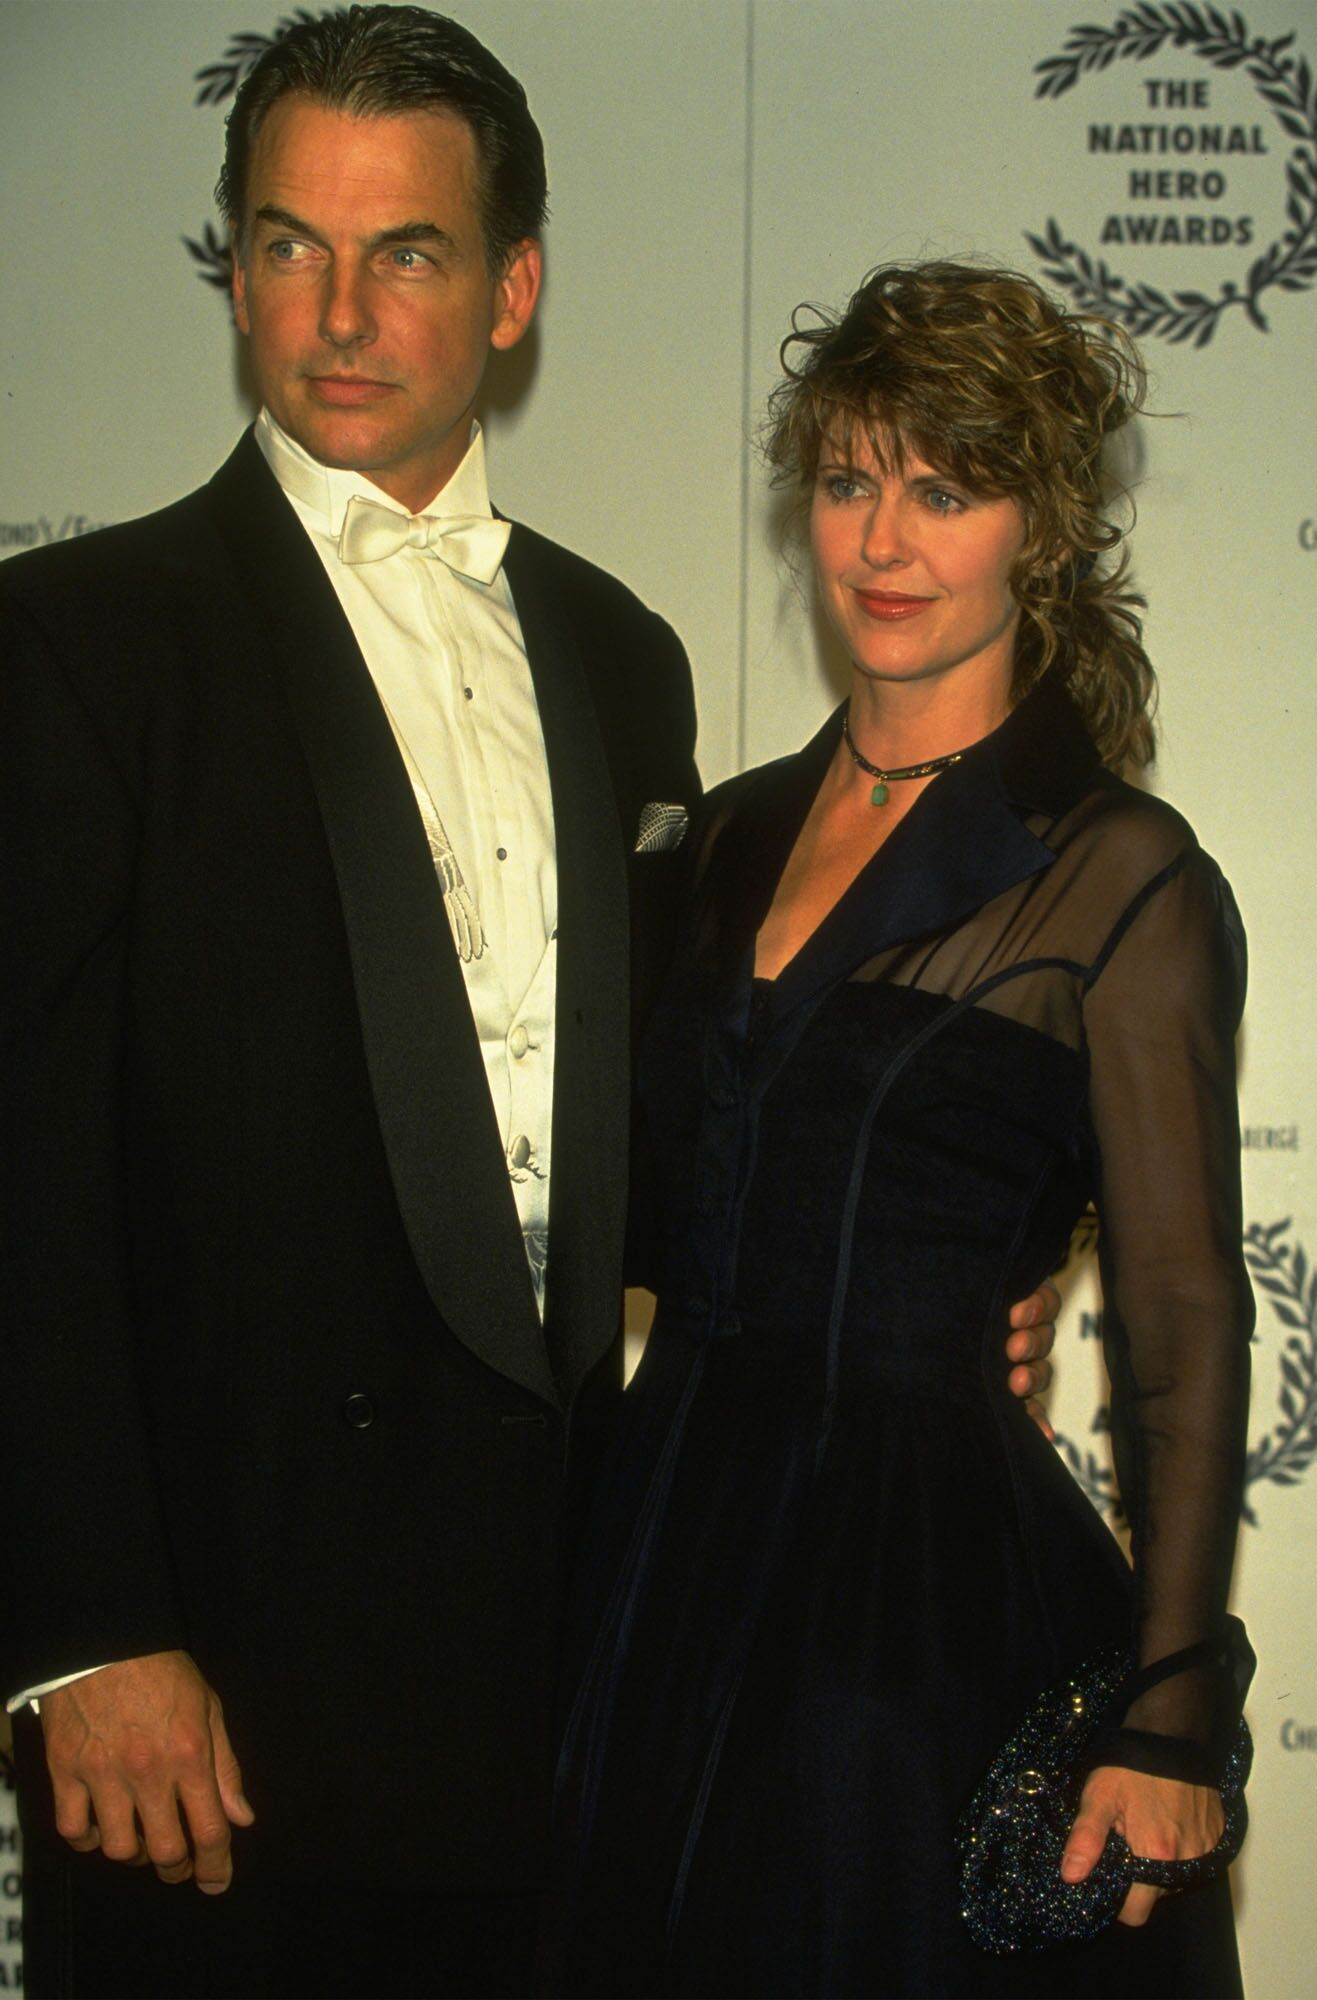 Mark Harmon and Pam Dawber at the National Hero Awards | Getty Images / Global Images Ukraine